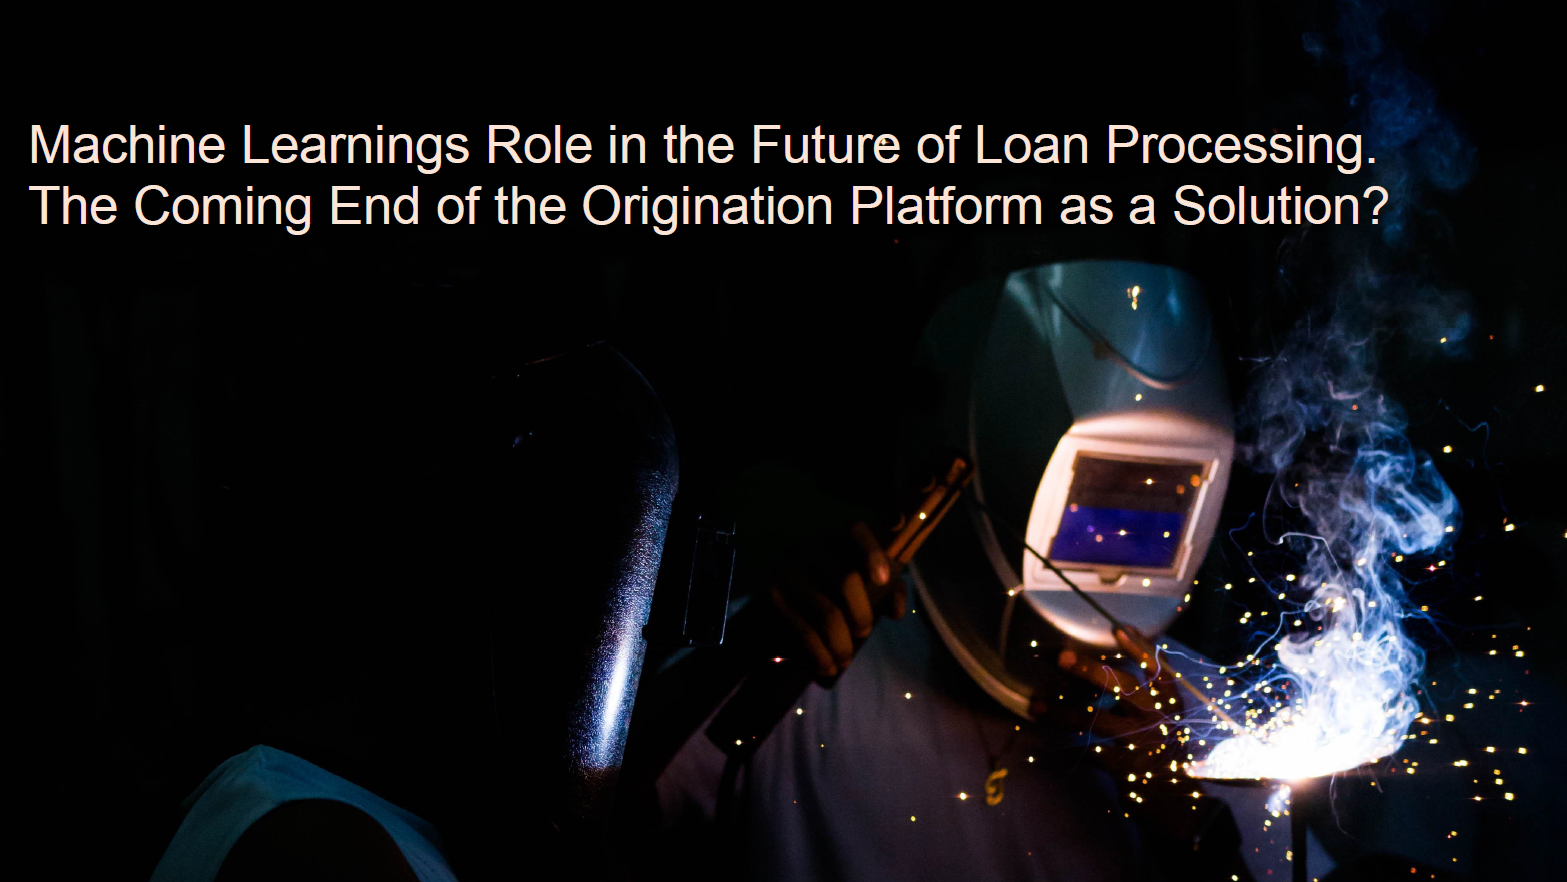 Machine Learnings Role in the Future of Loan Processing – the Coming End of the Origination Platform as a Solution